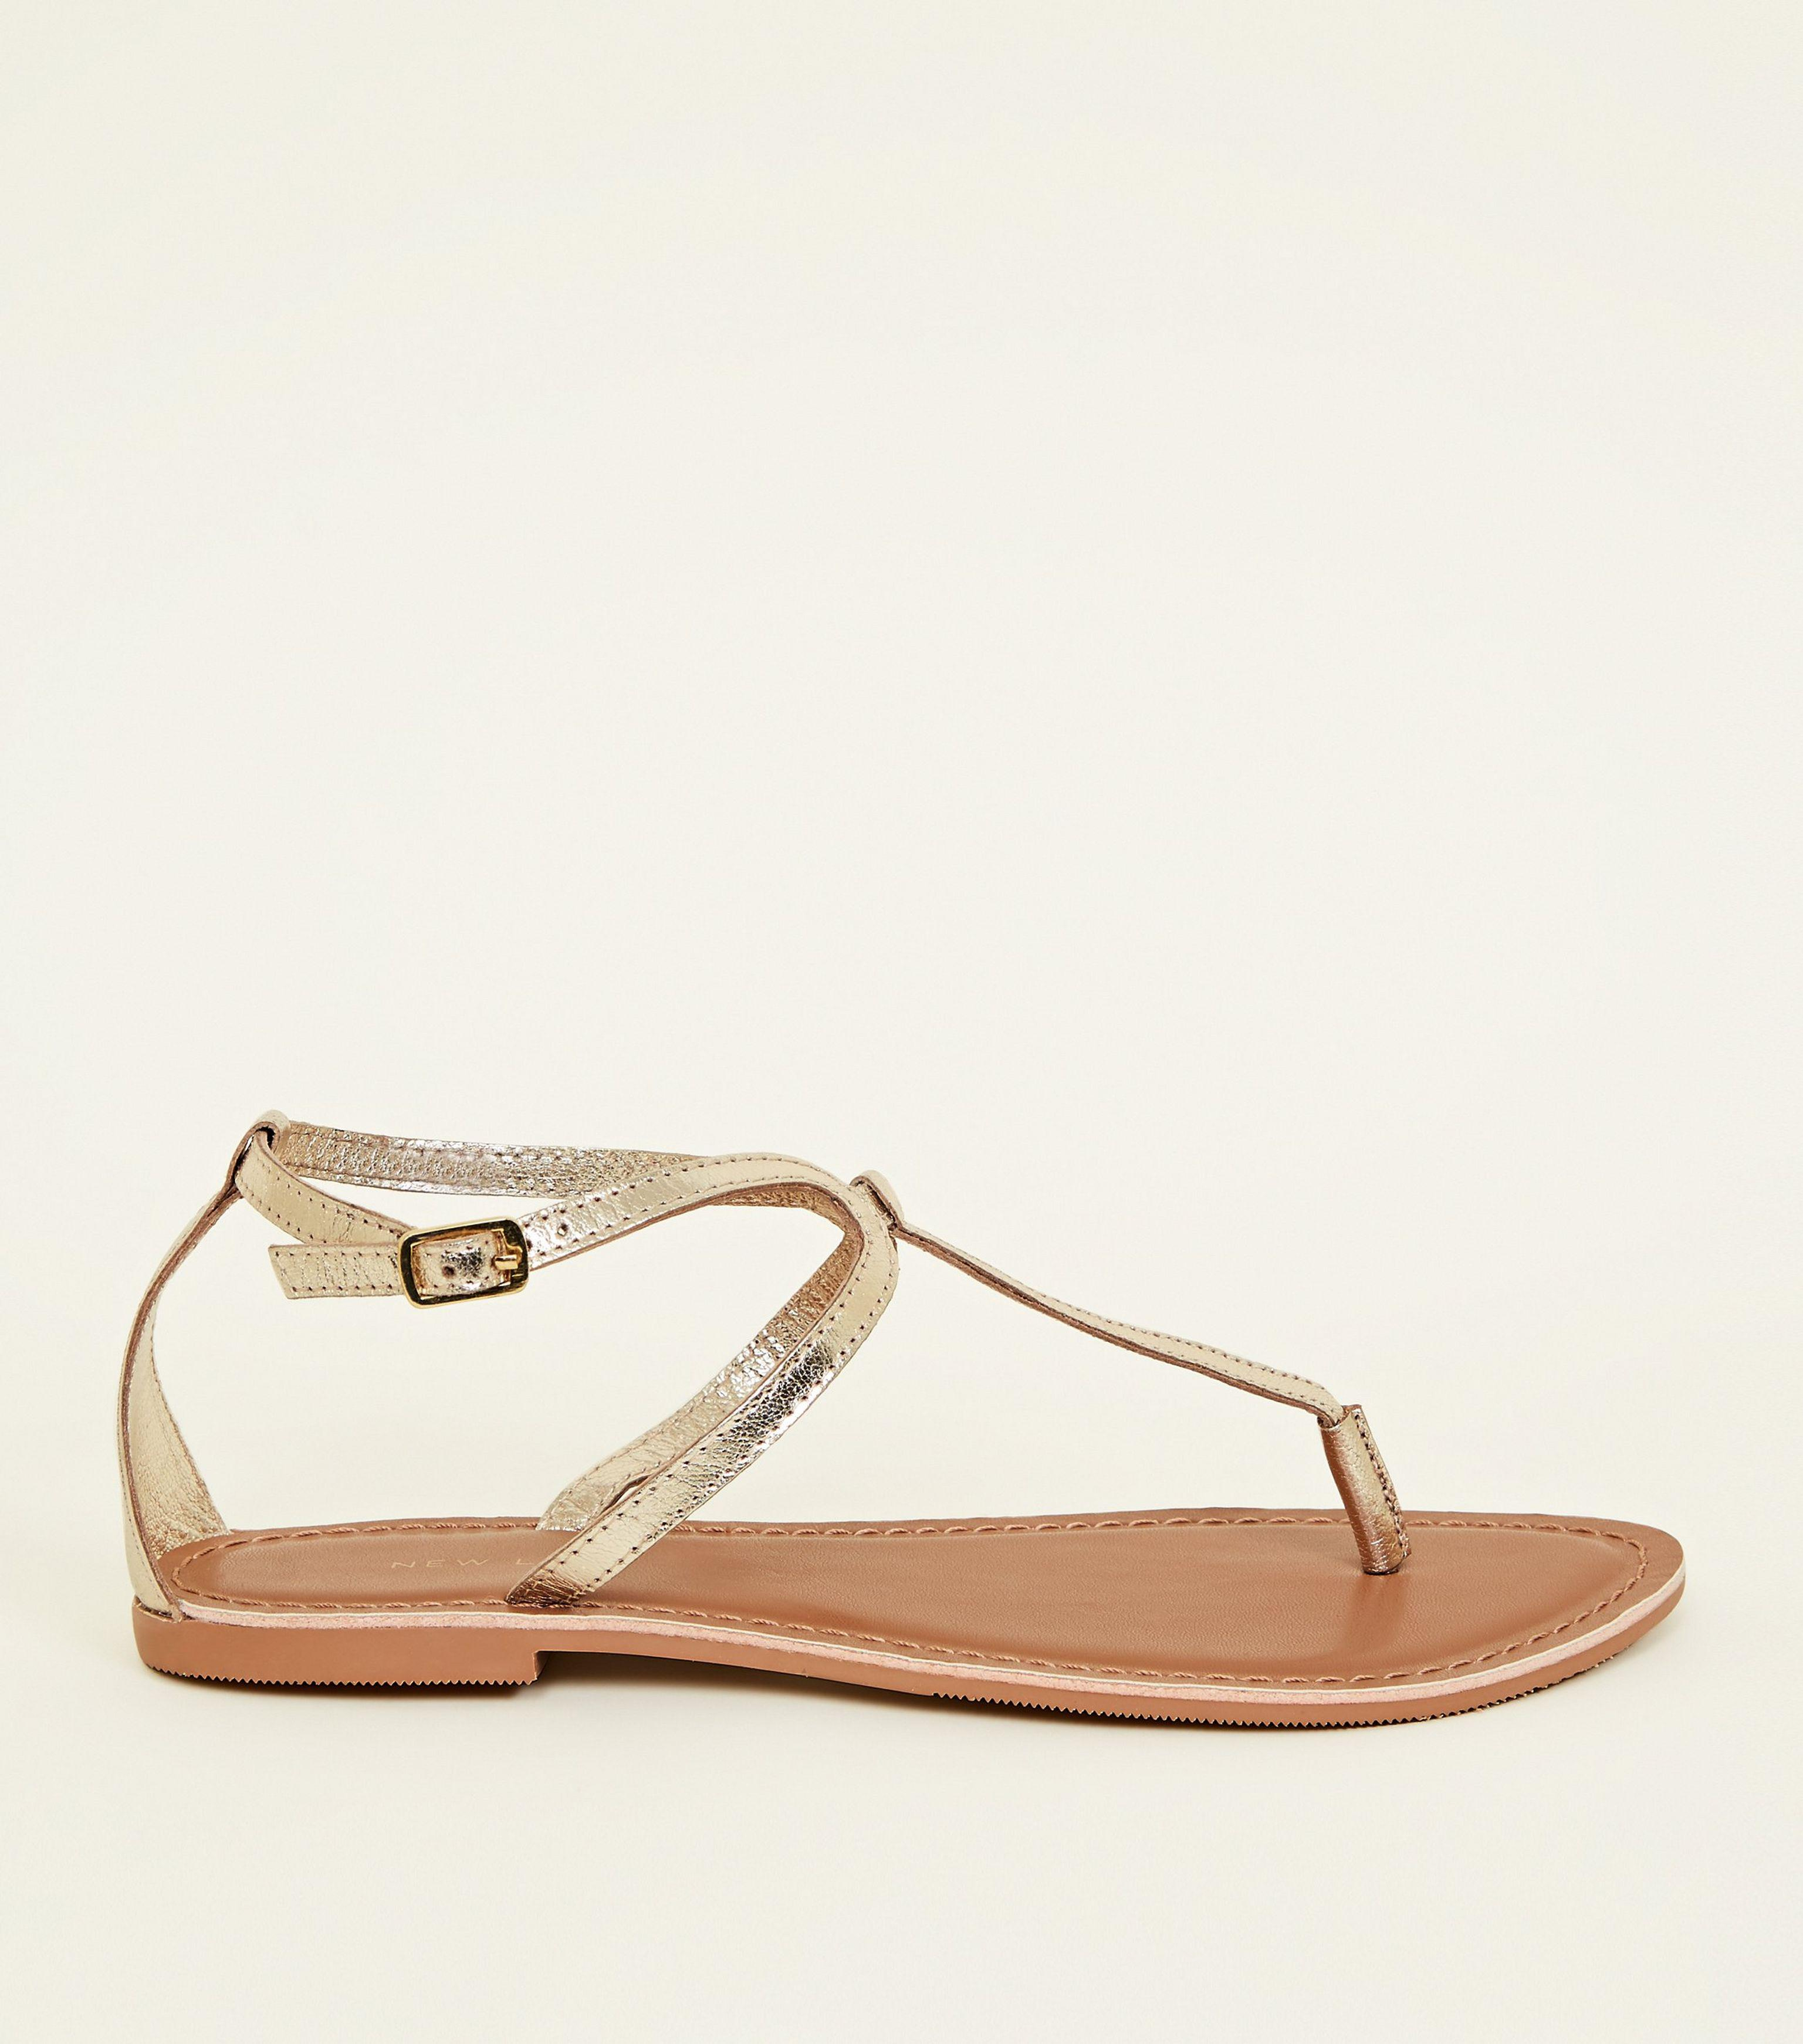 a611bfc3381 New Look Wide Fit Gold Leather Flat Sandals in Metallic - Lyst